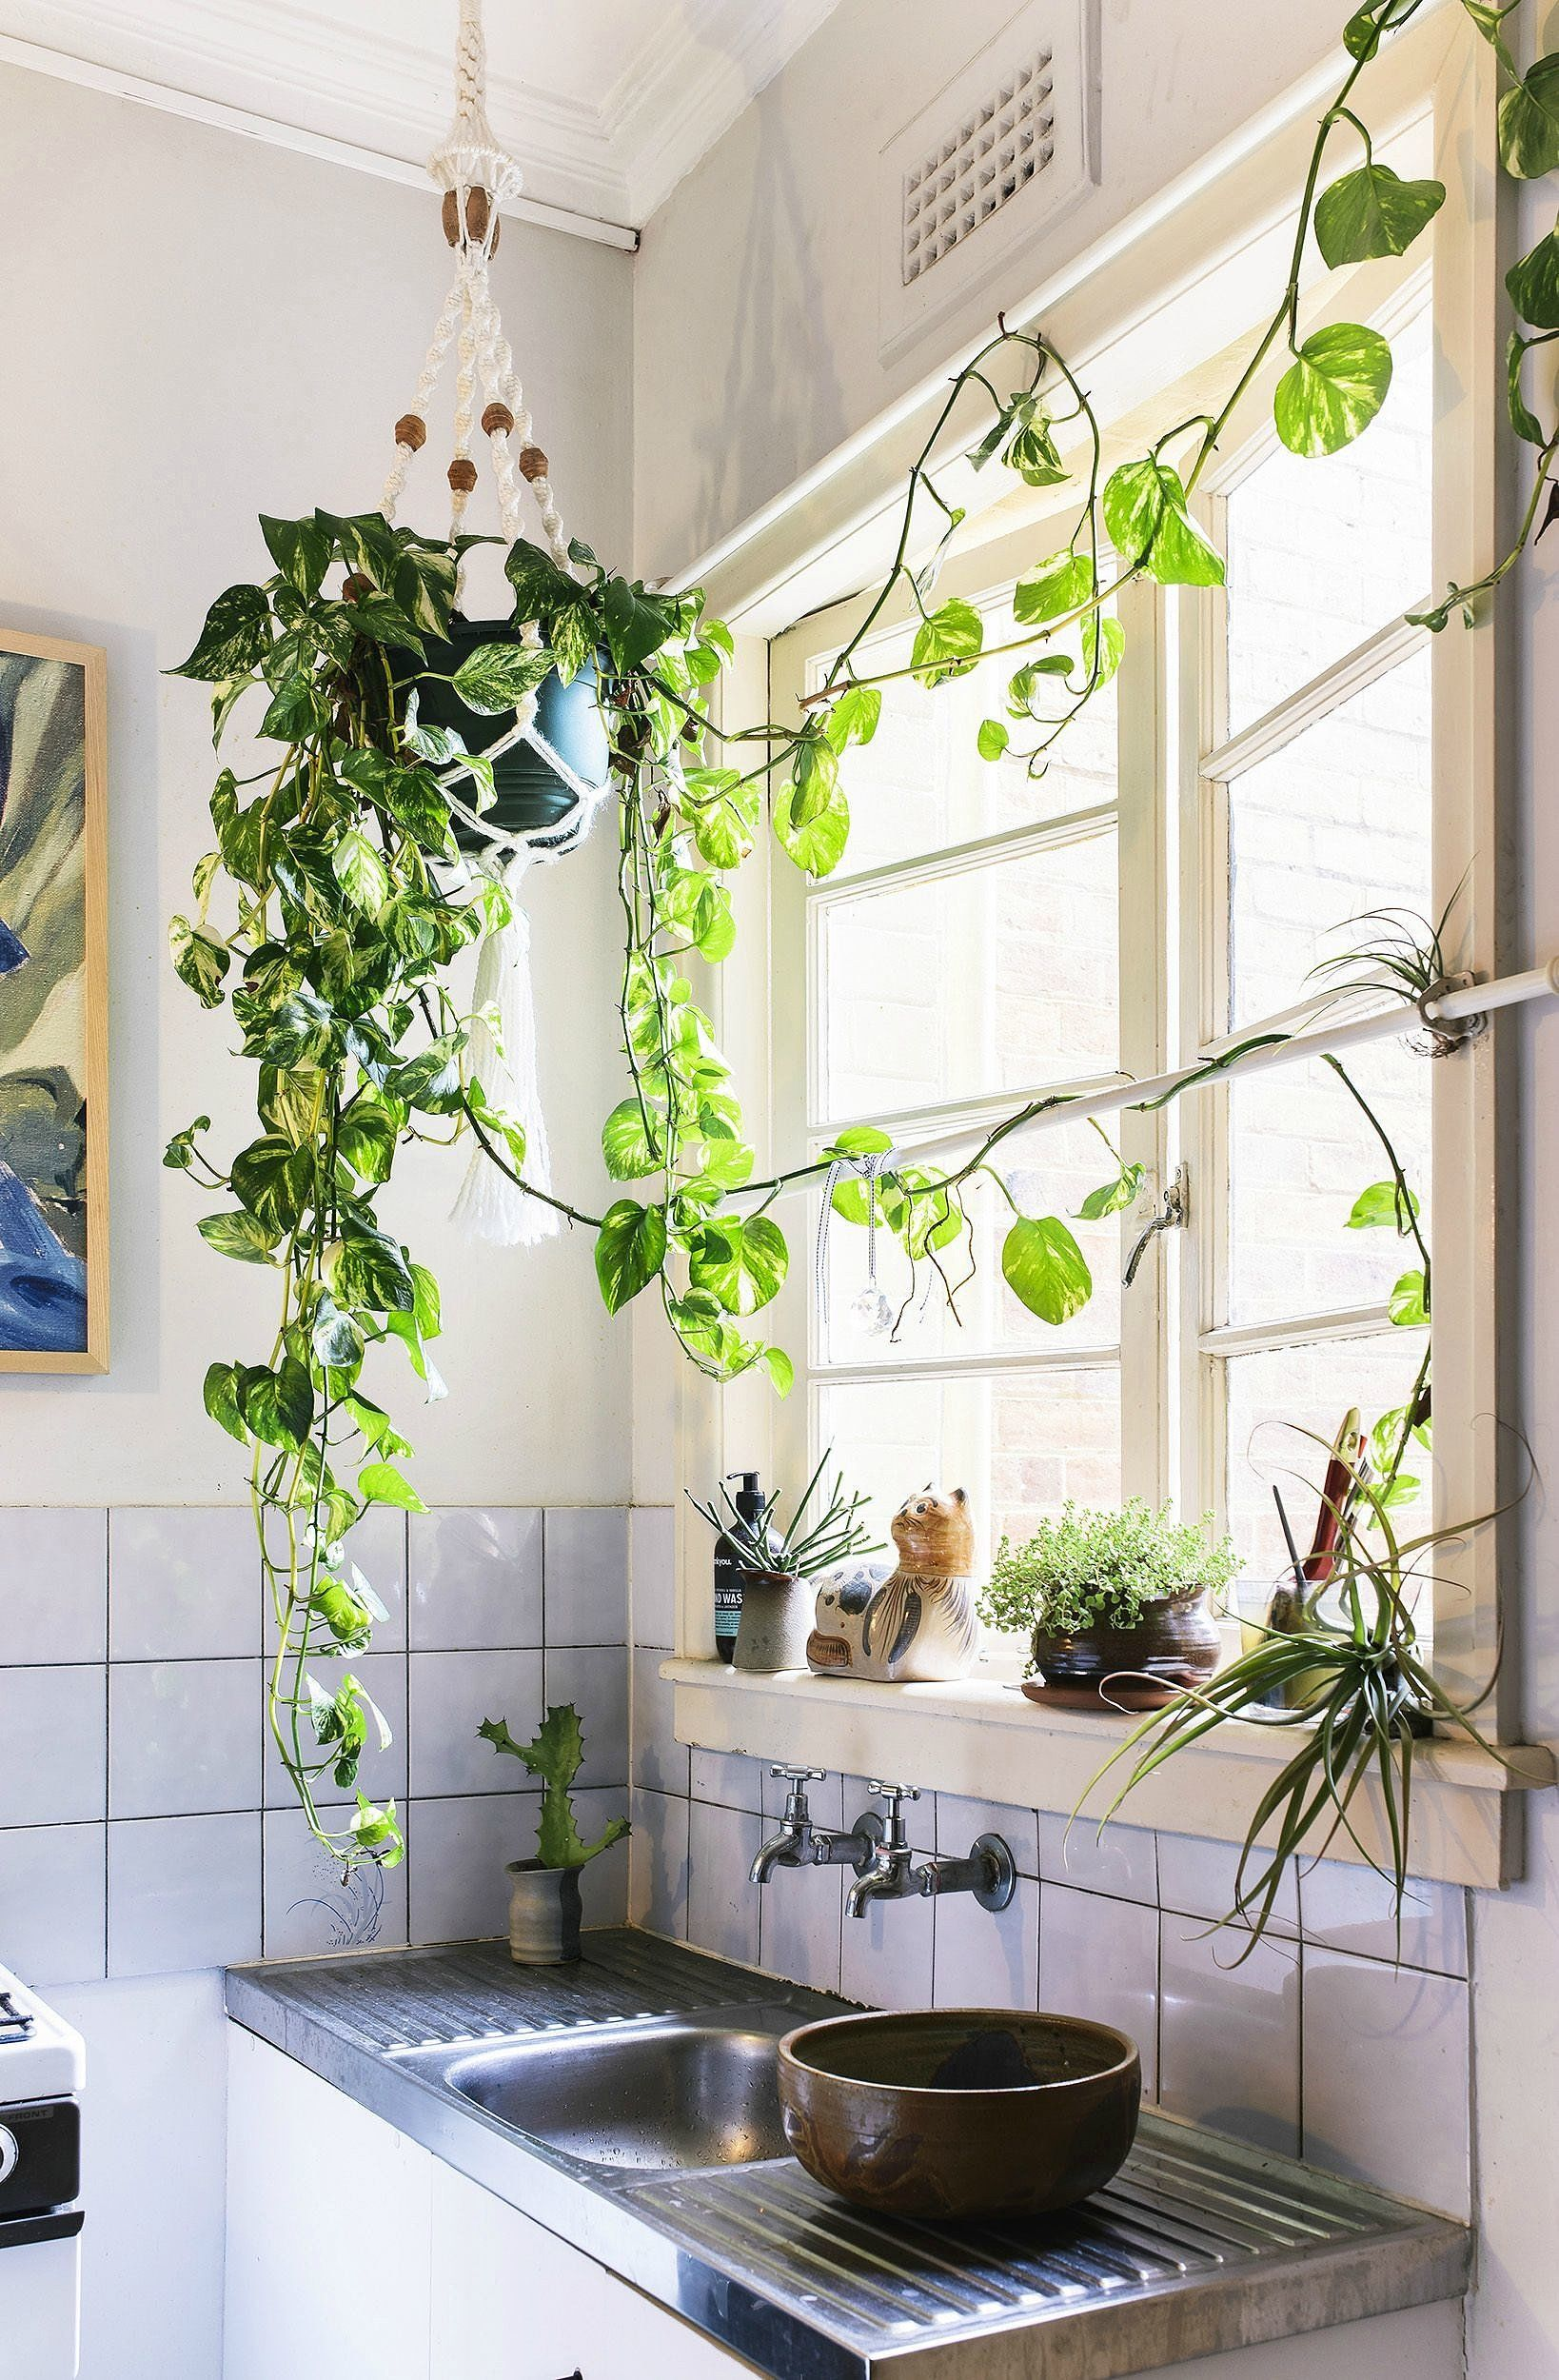 Kitchen window for plants - See Why Reddit Is Freaking Out Over This Apartment